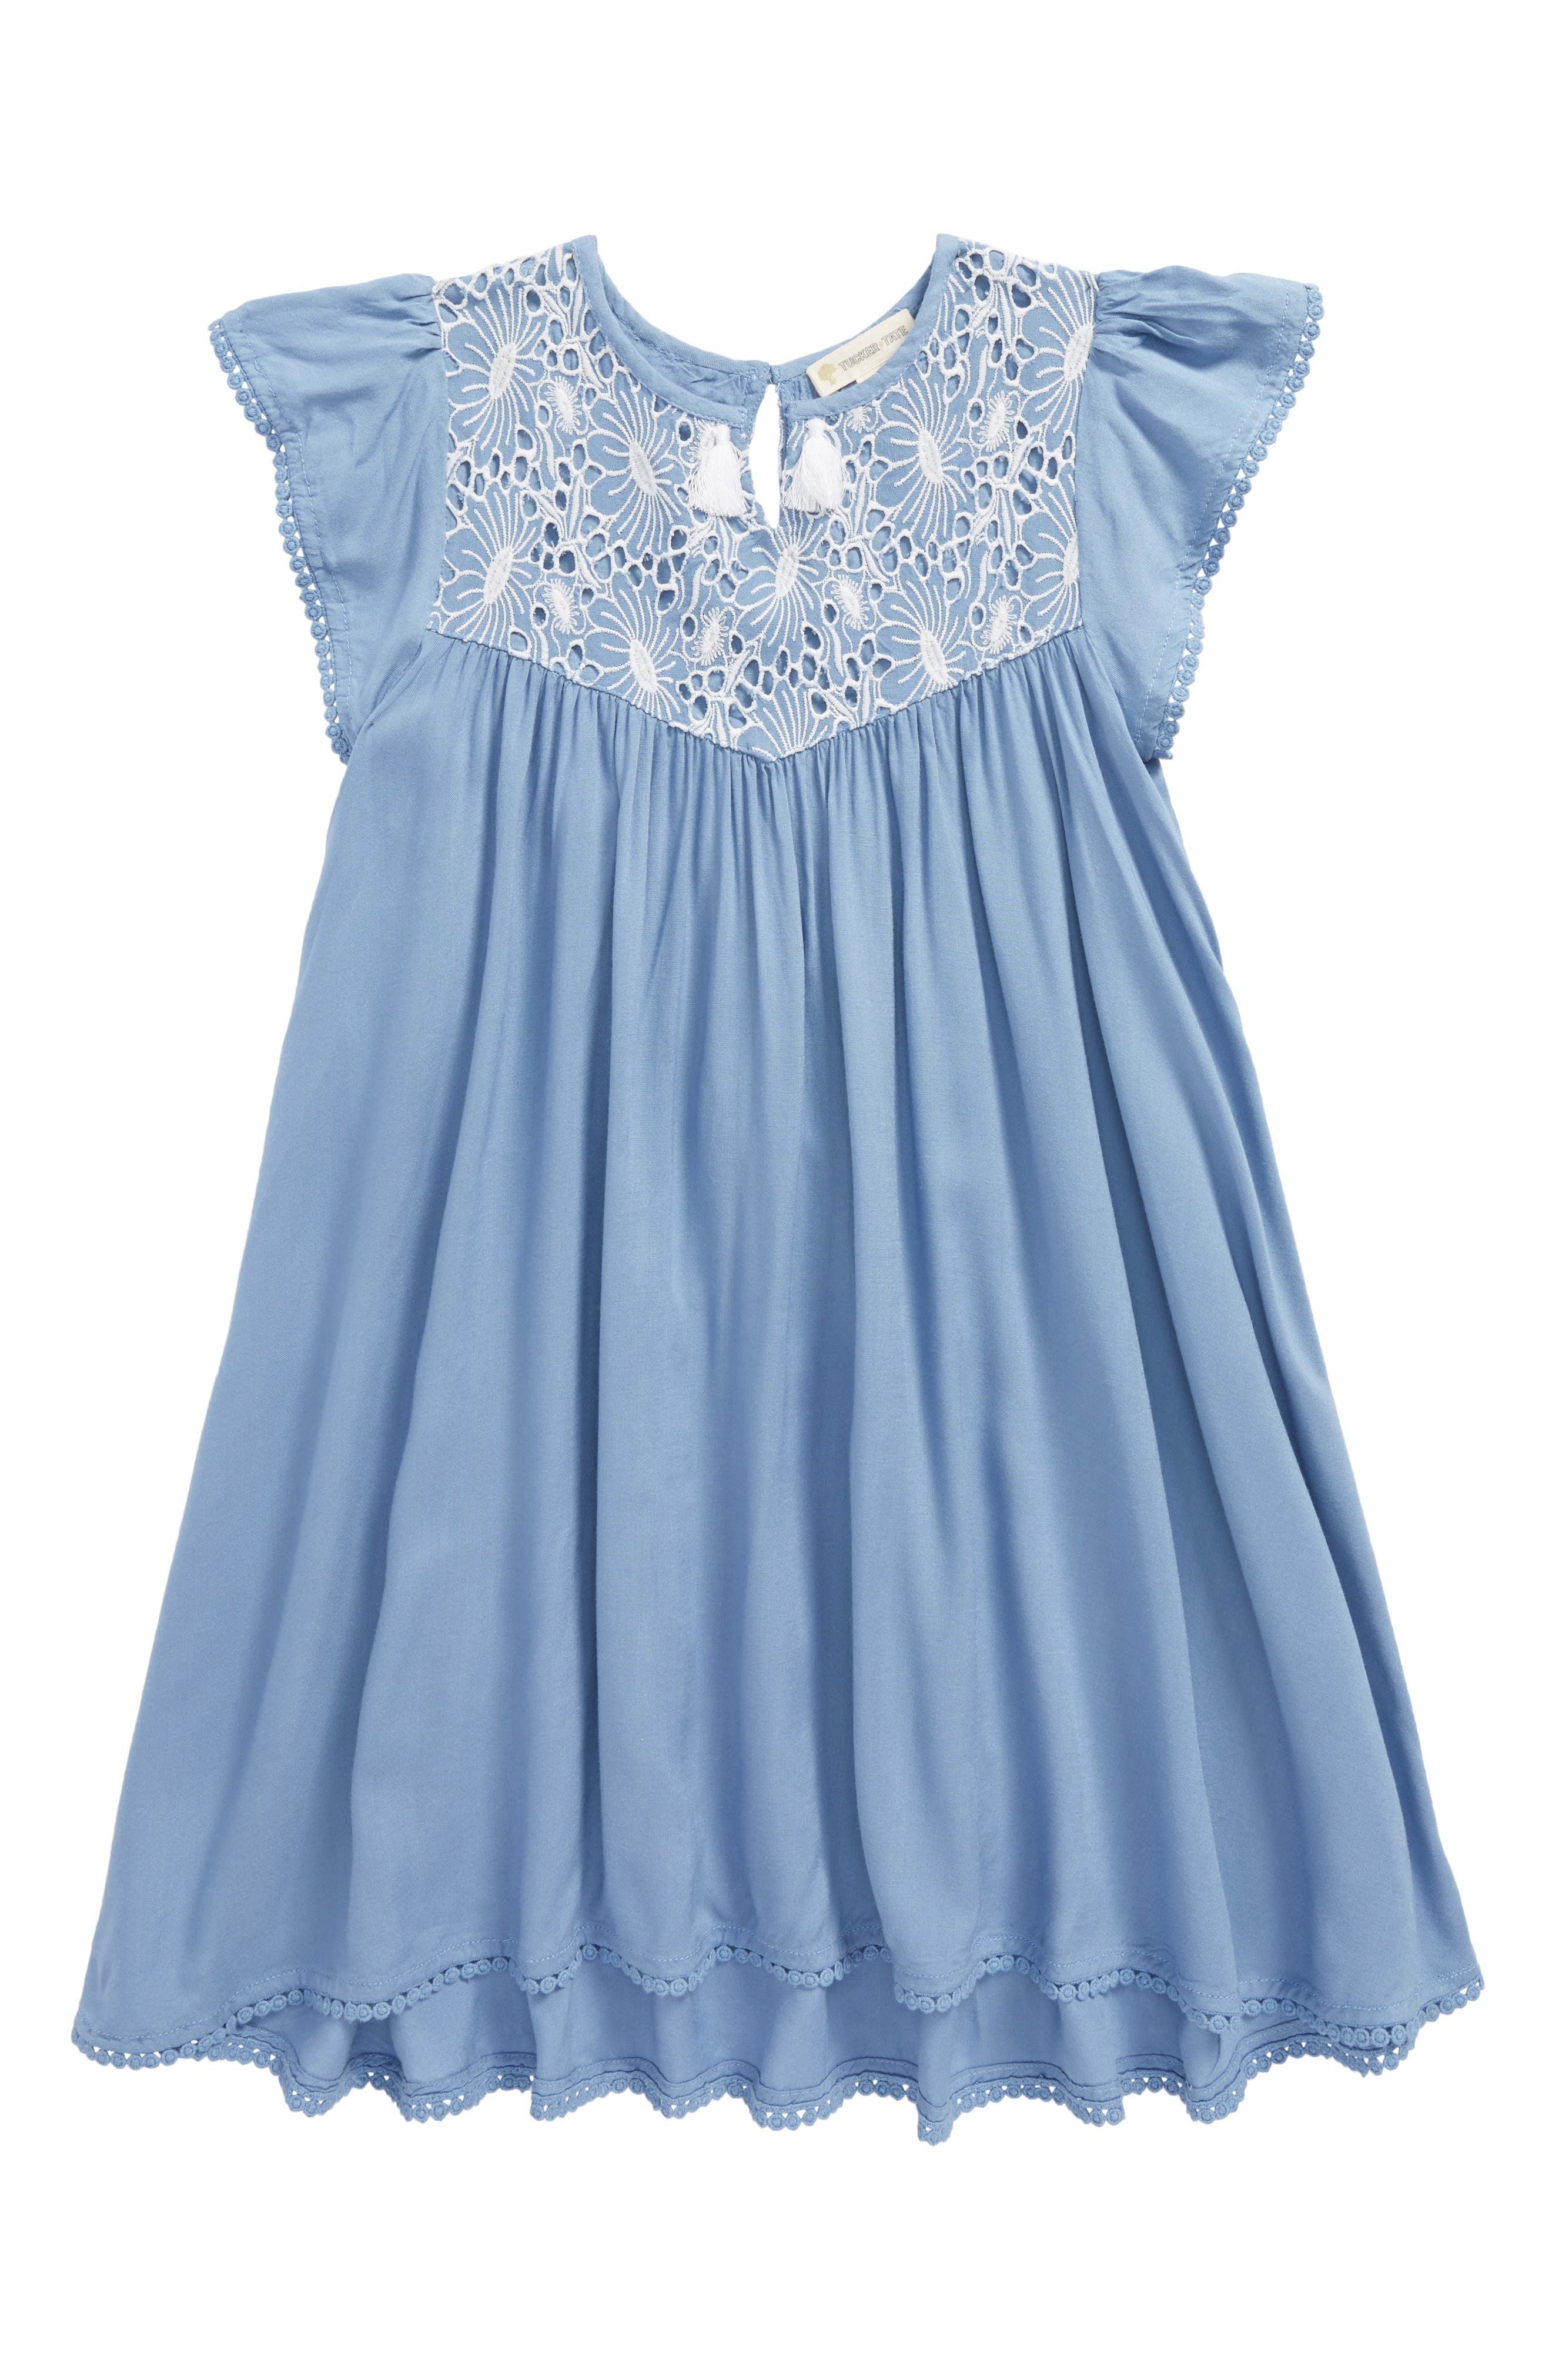 Embroidered Tassel Dress,                             Main thumbnail 1, color,                             Blue